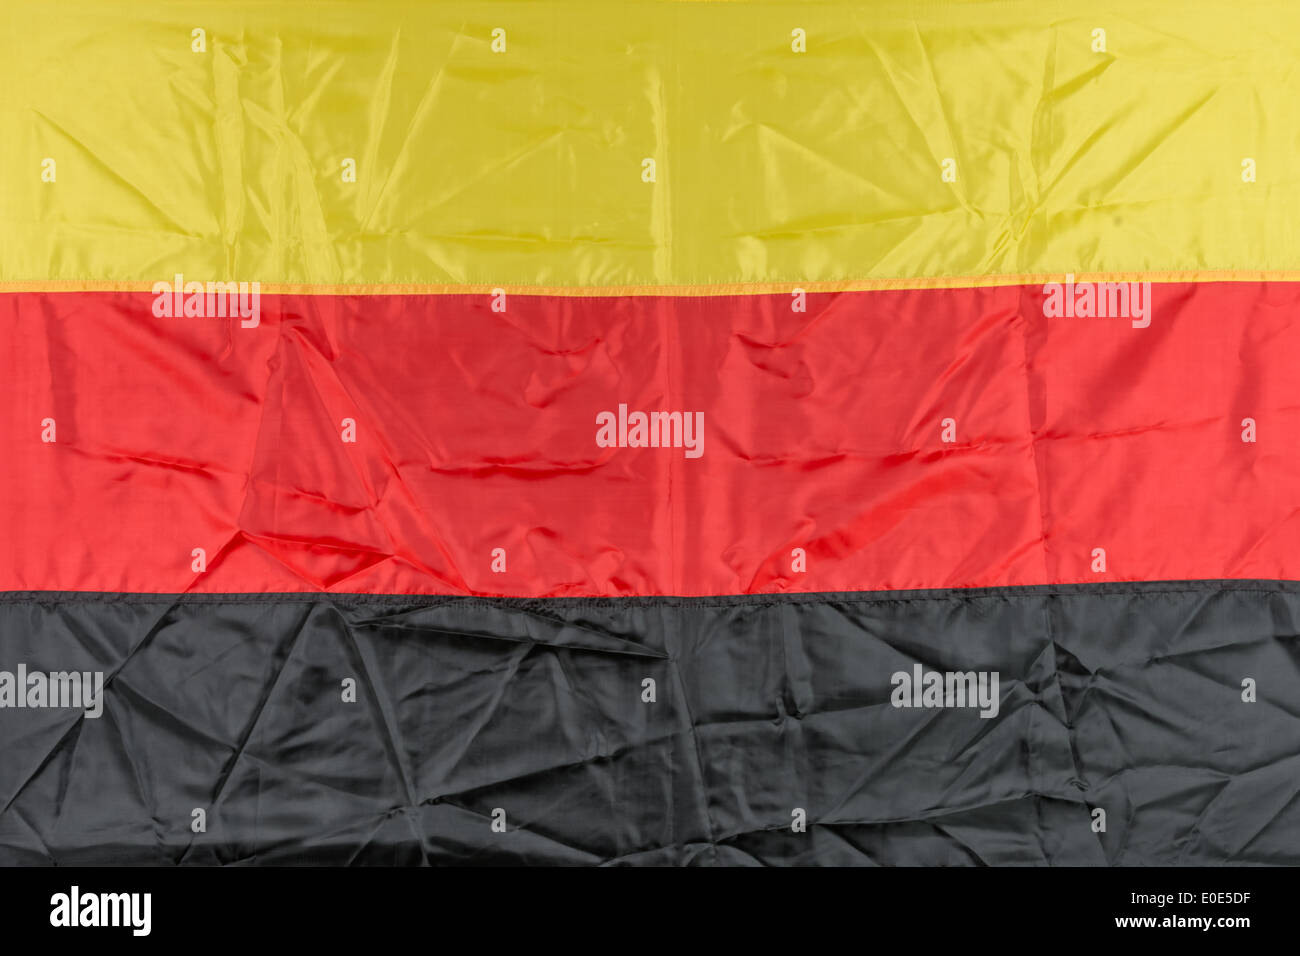 germany flag on fky background - Stock Image